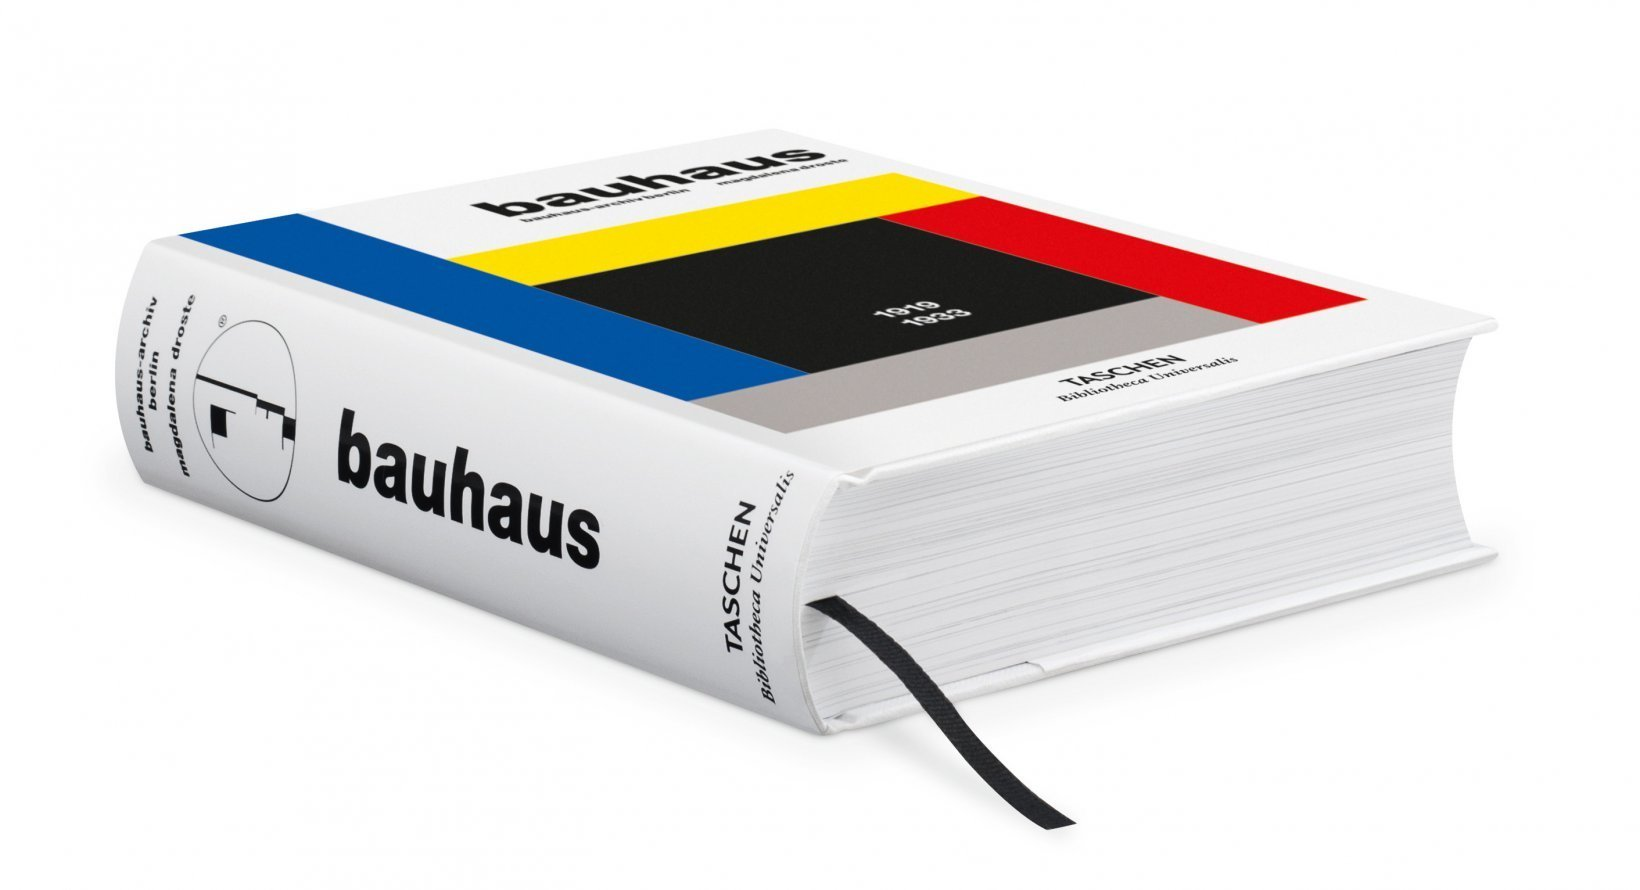 By Magdalena Droste from Bauhaus copyright Taschen 2019